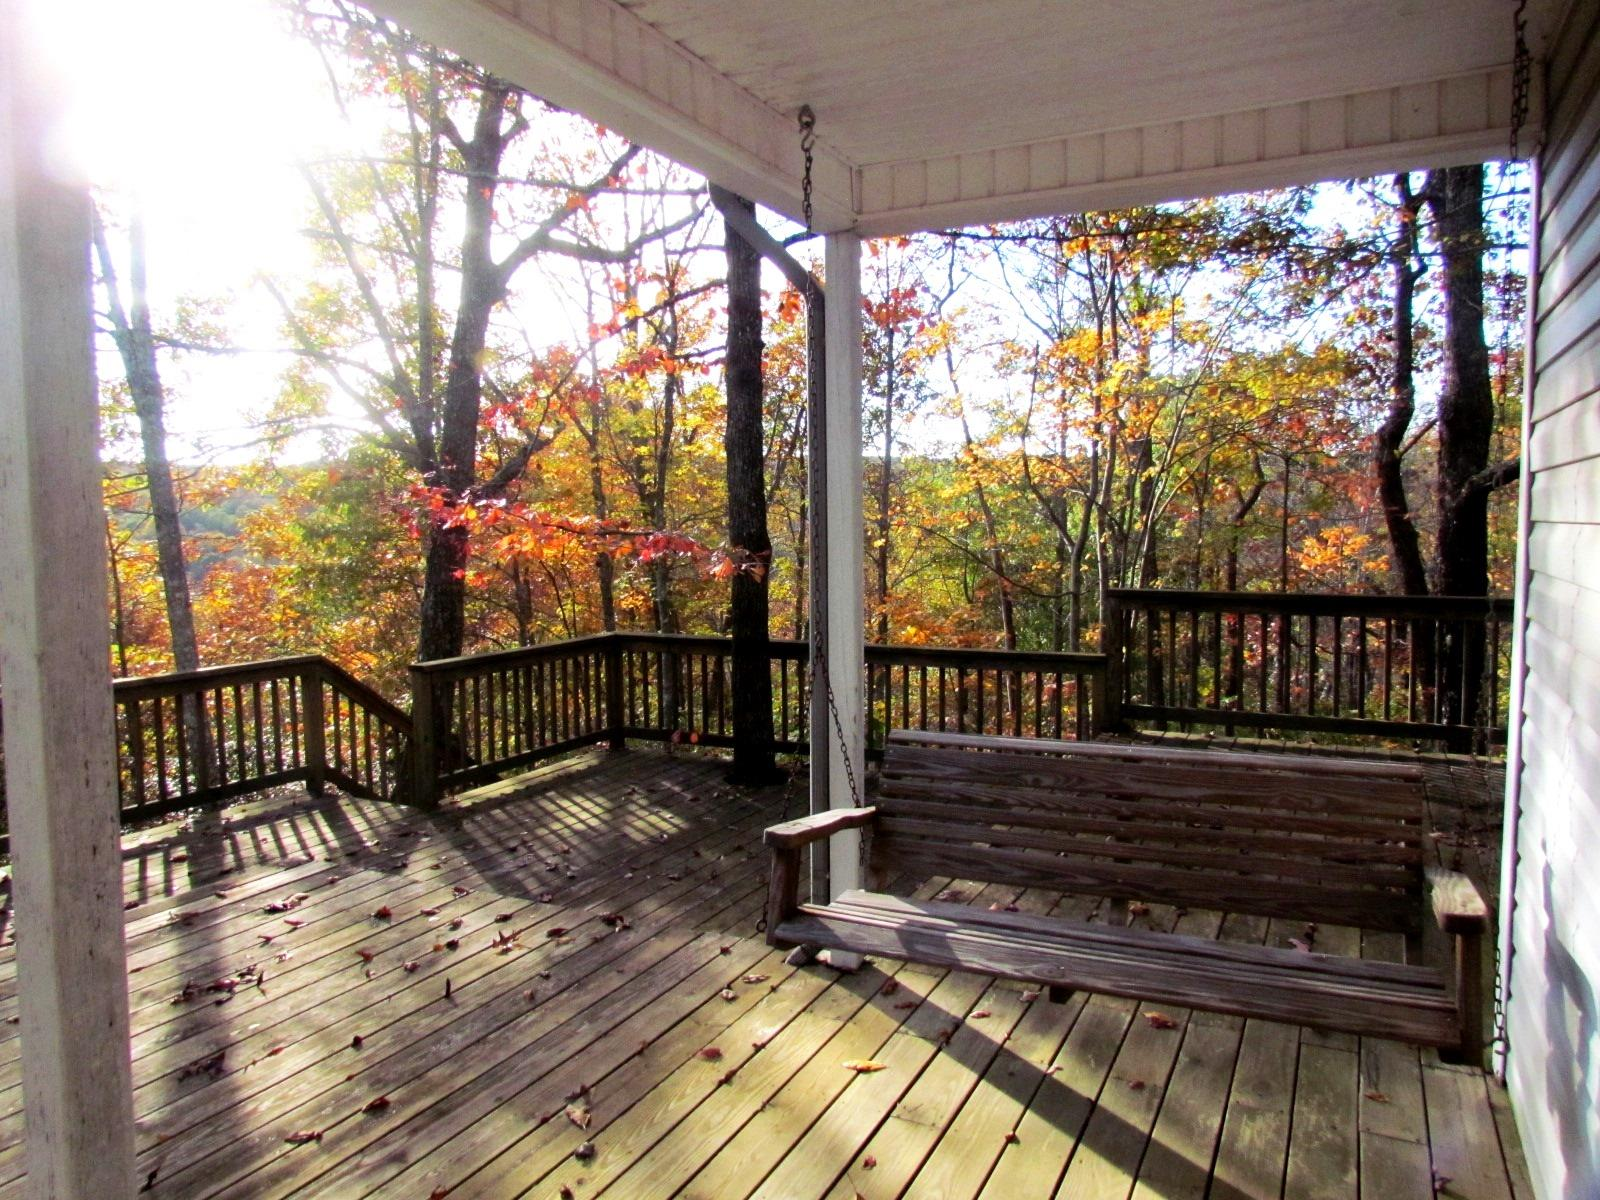 294 Jackson Point Rd, Sewanee, TN 37375 - Sewanee, TN real estate listing